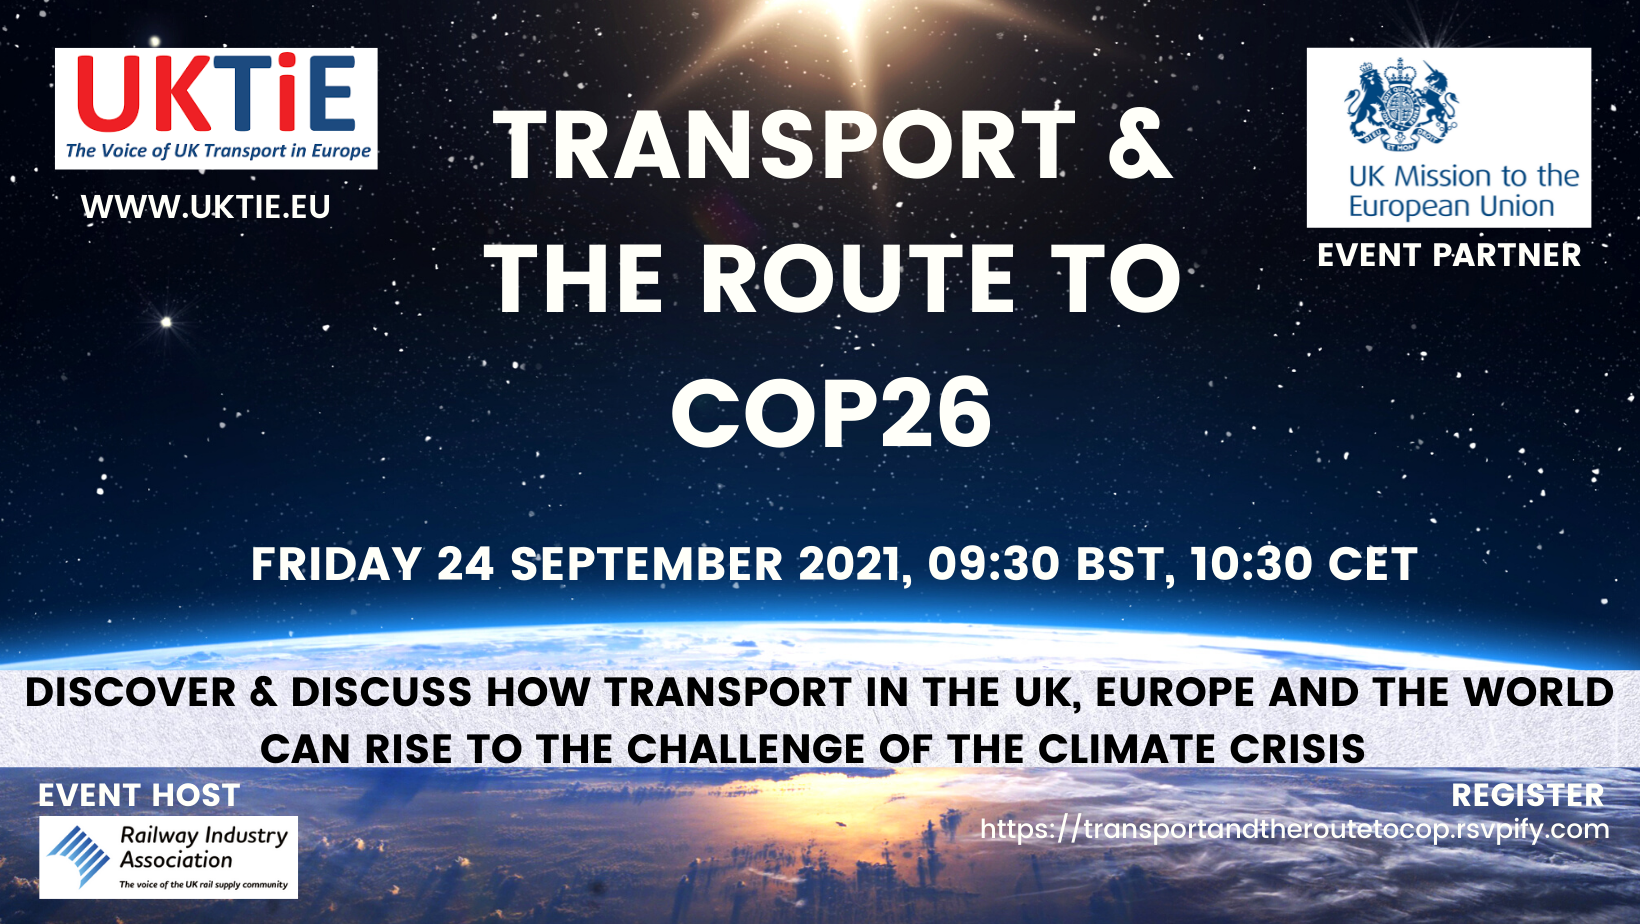 Exclusive briefing on COP26 organised by LP Brussels, UKTiE in partnership with UK Mission to EU